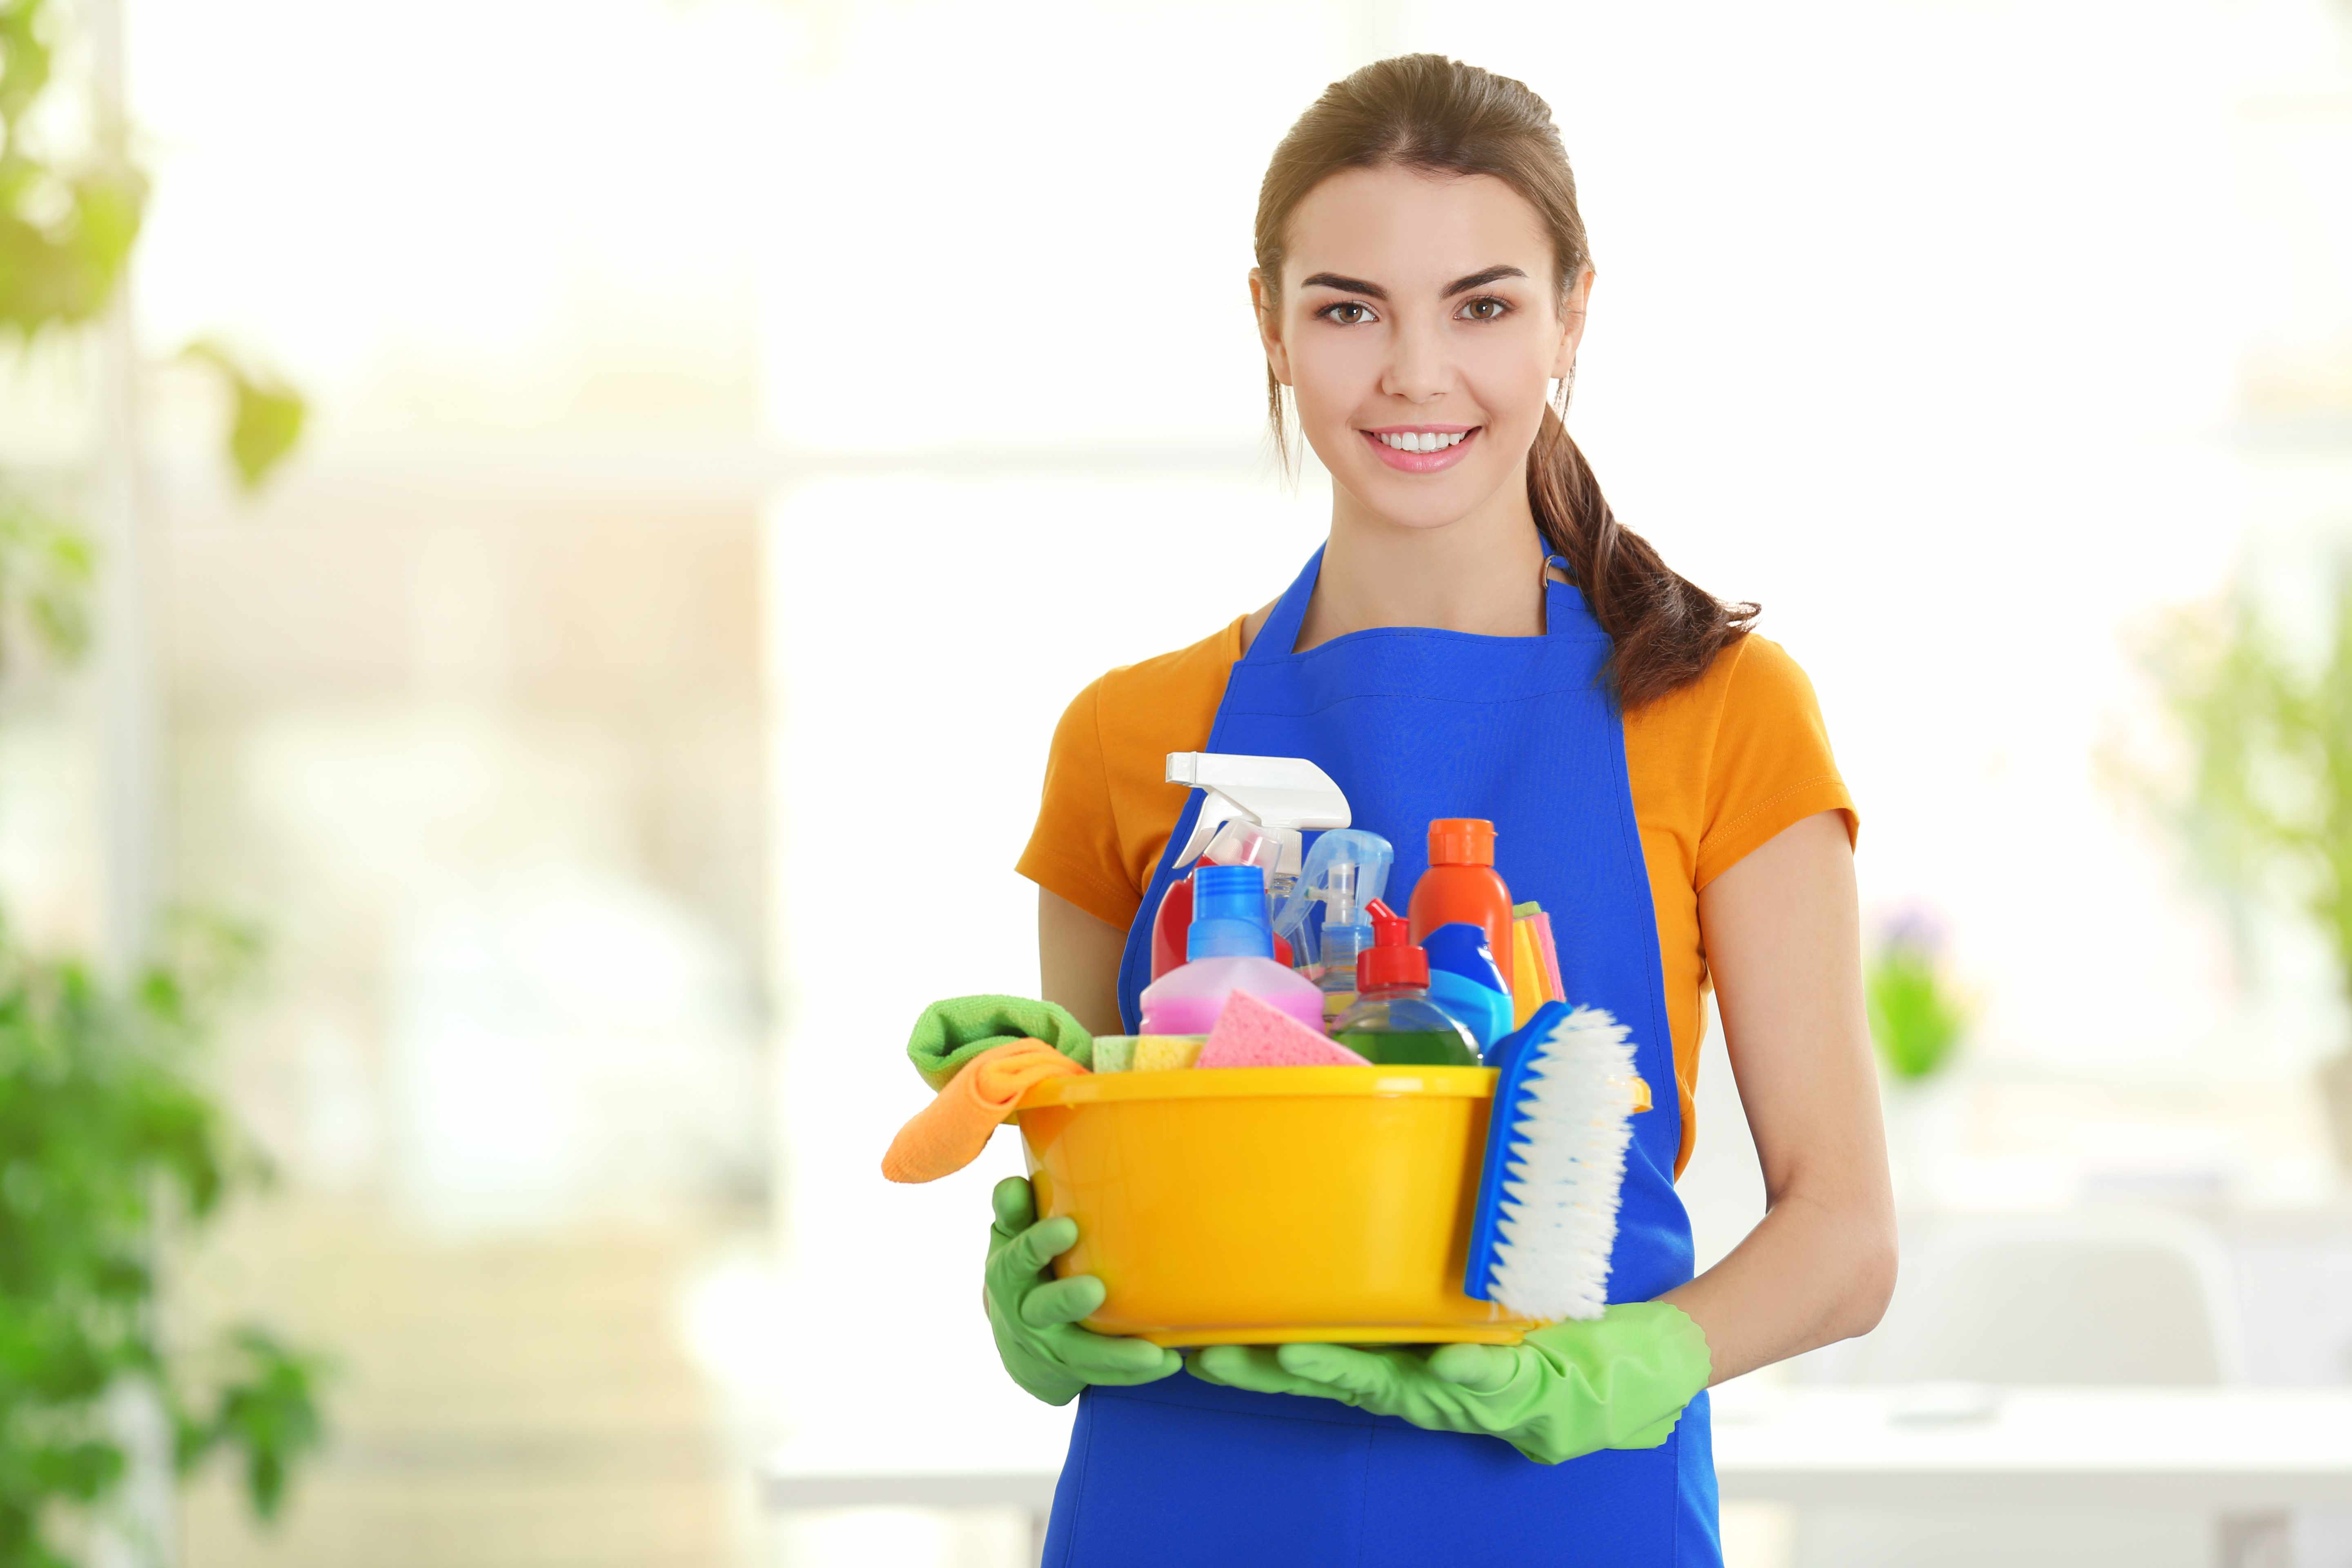 cleaning-services-and-supplies-business-for-sale-70-000-4